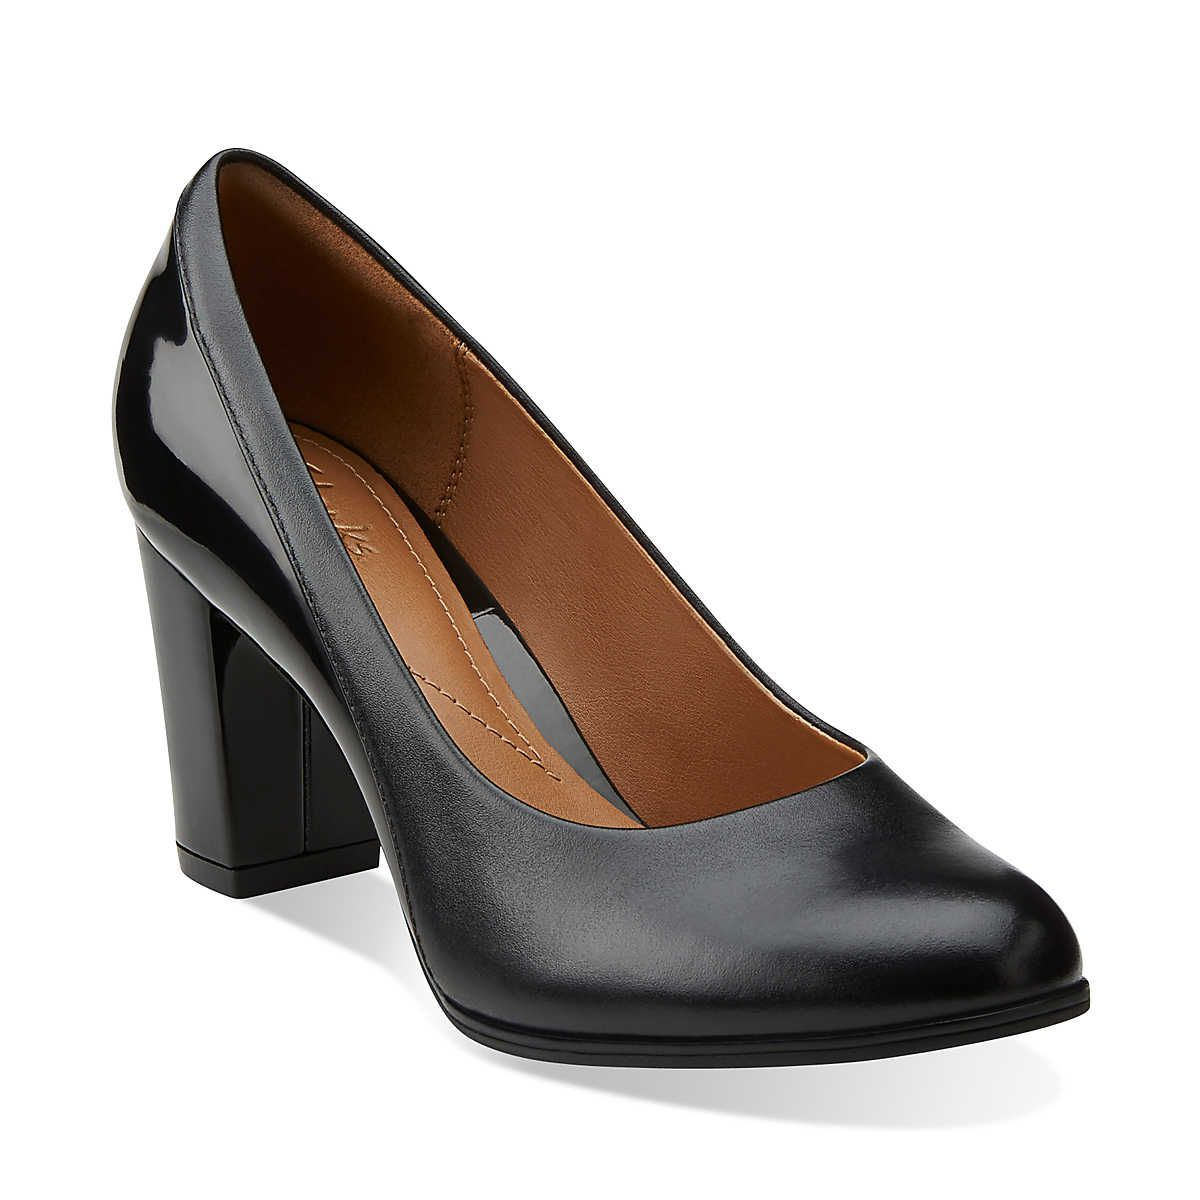 Clarks Basil Auburn High Heels Color: Black